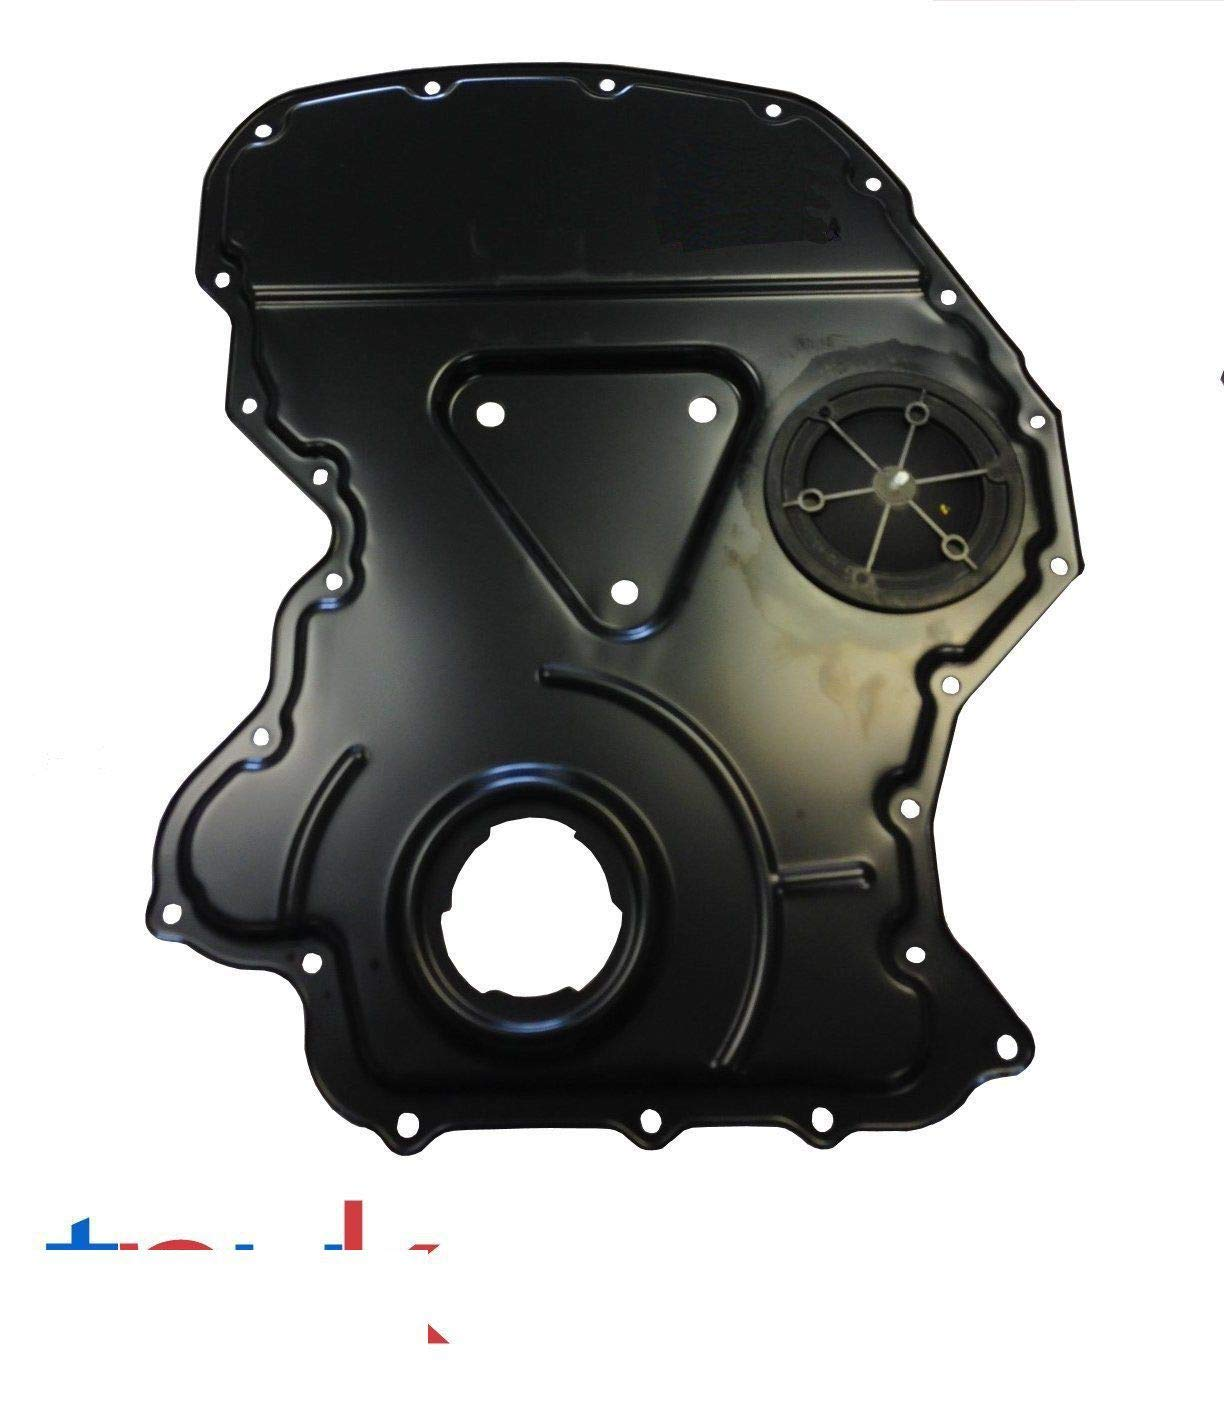 Transit Parts Brand New Transit MK6 Mondeo MK3 Timing Chain Front Cover 2.0 FWD 2000-2006